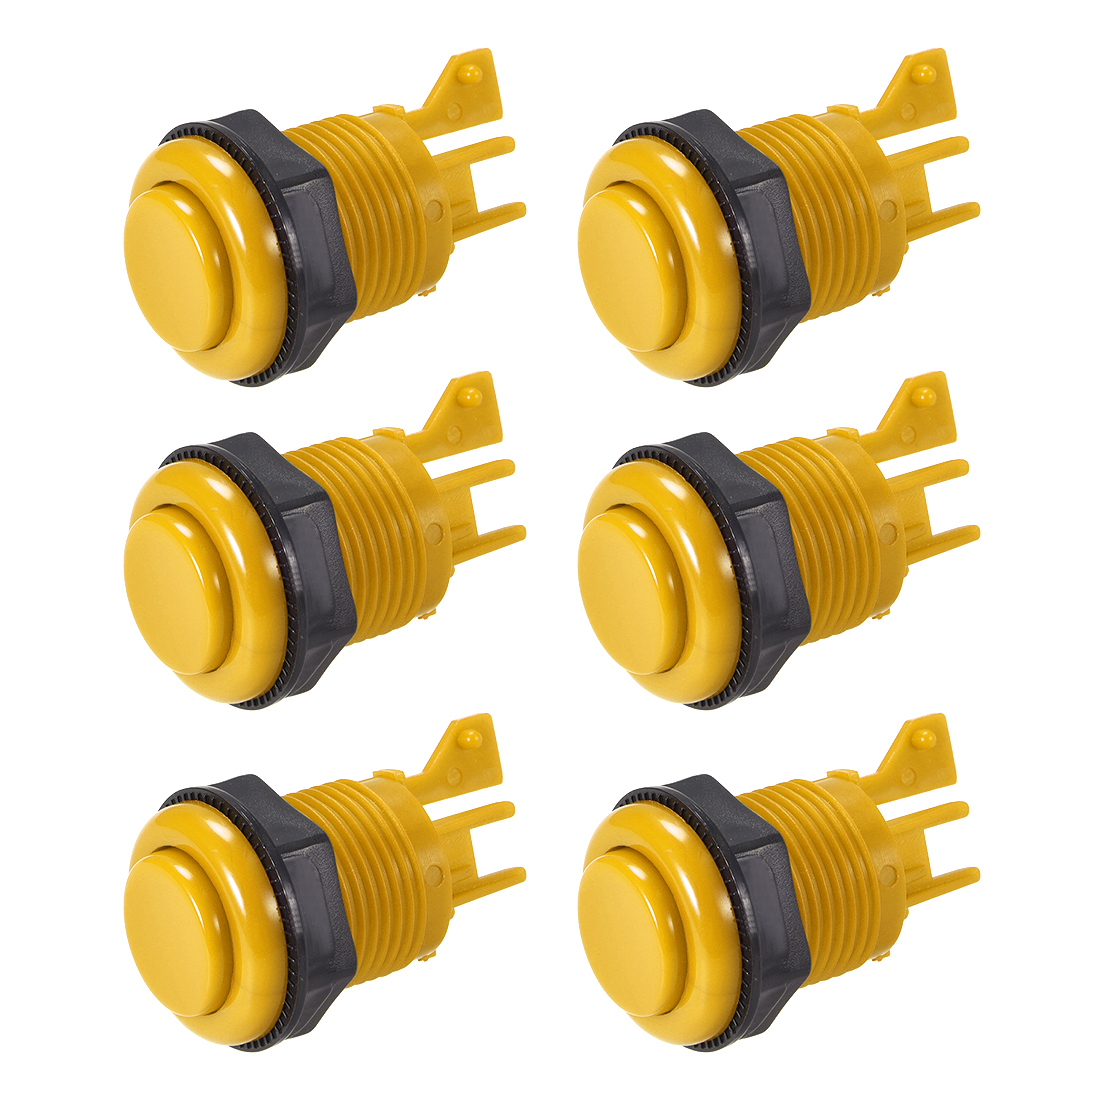 27mm Mounting Game Push Button Switch Shell for Arcade Video Games Yellow 6pcs